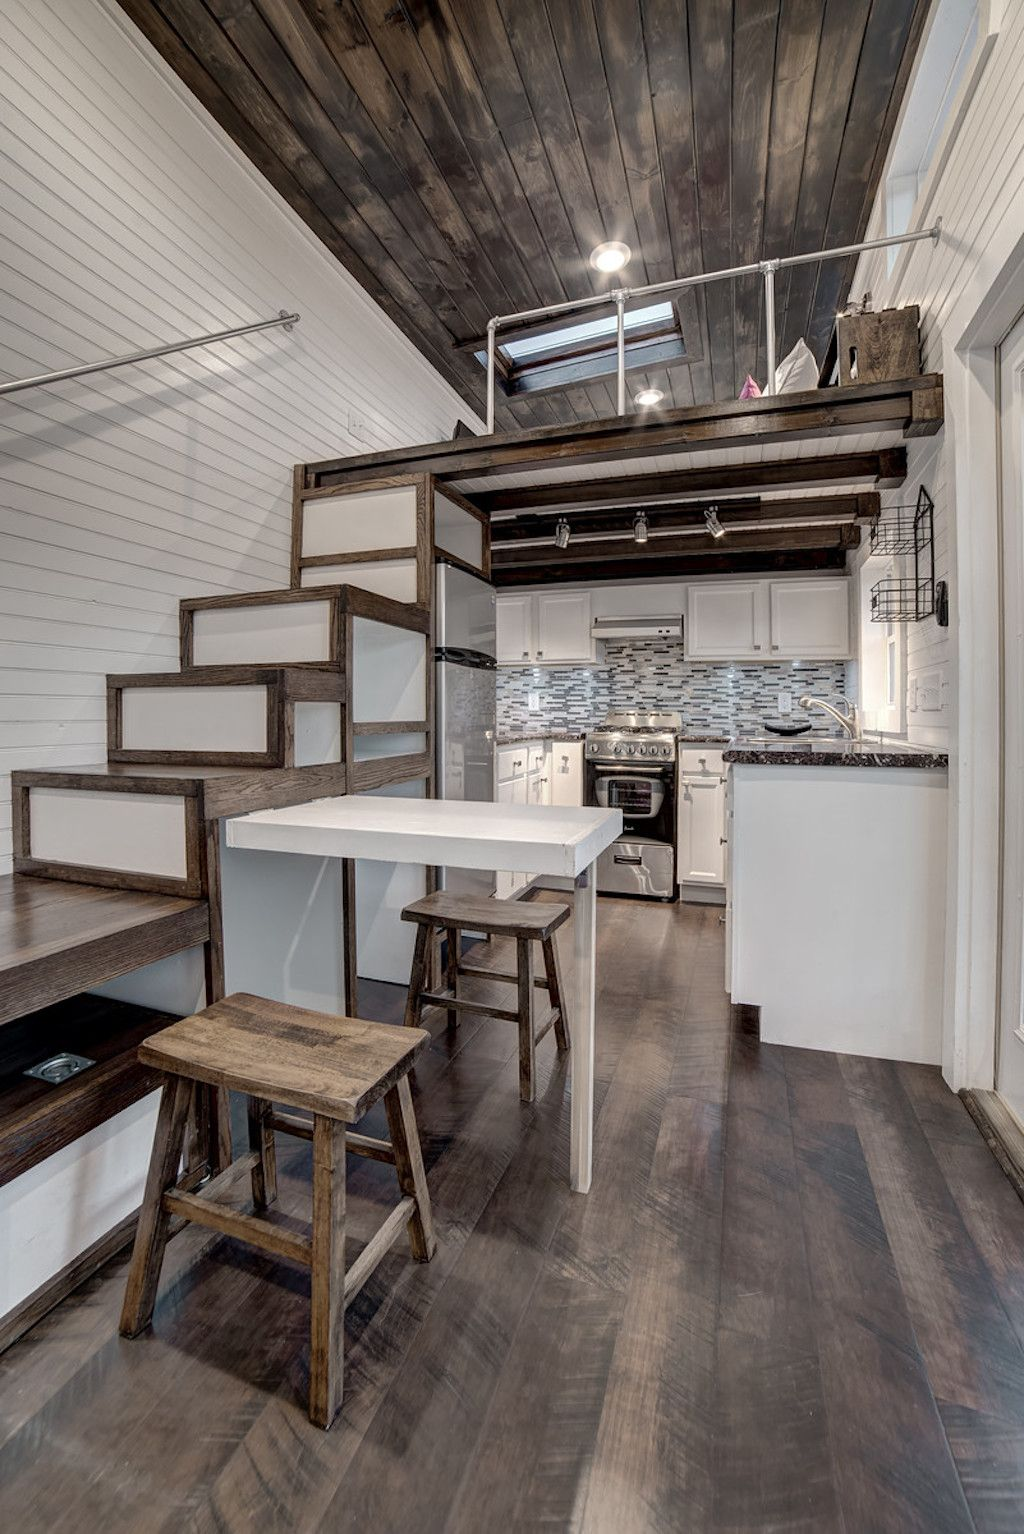 View toward kitchen the alpha tiny home by new frontier tiny homes - Freedom Tiny House Swoon